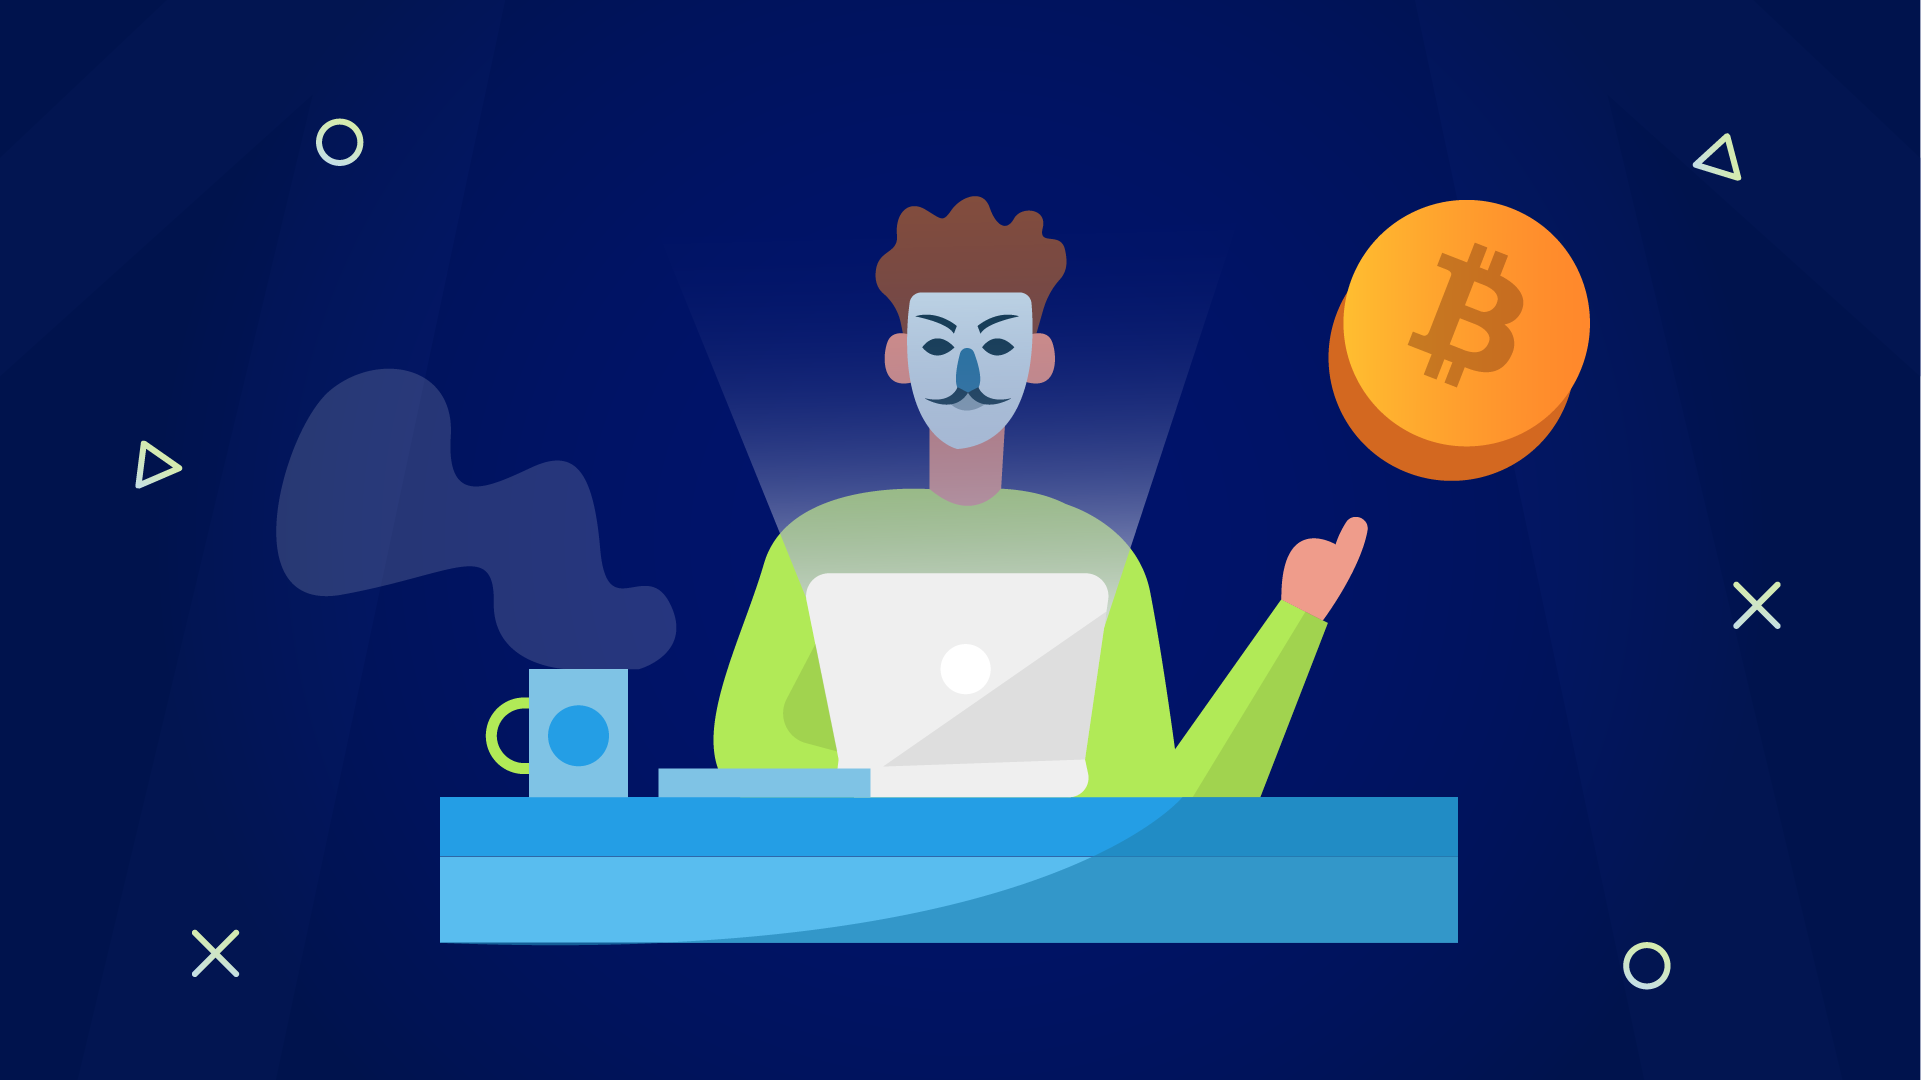 The Anonymity of Cryptocurrencies